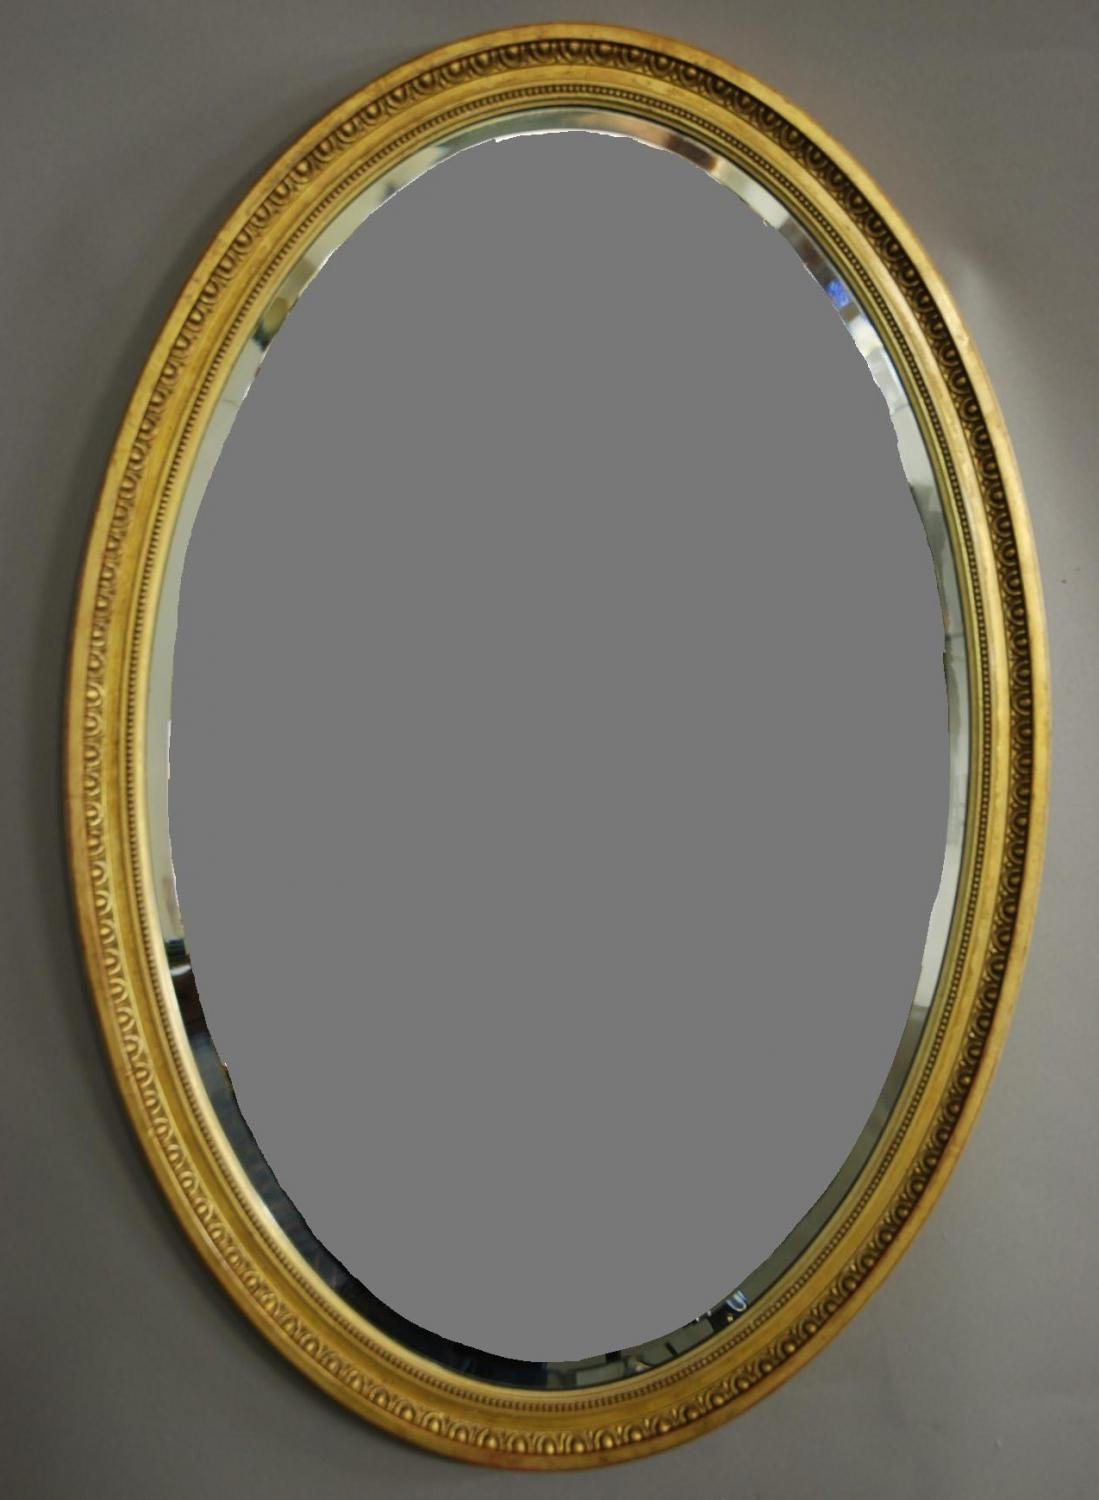 Early 20th century oval giltwood mirror